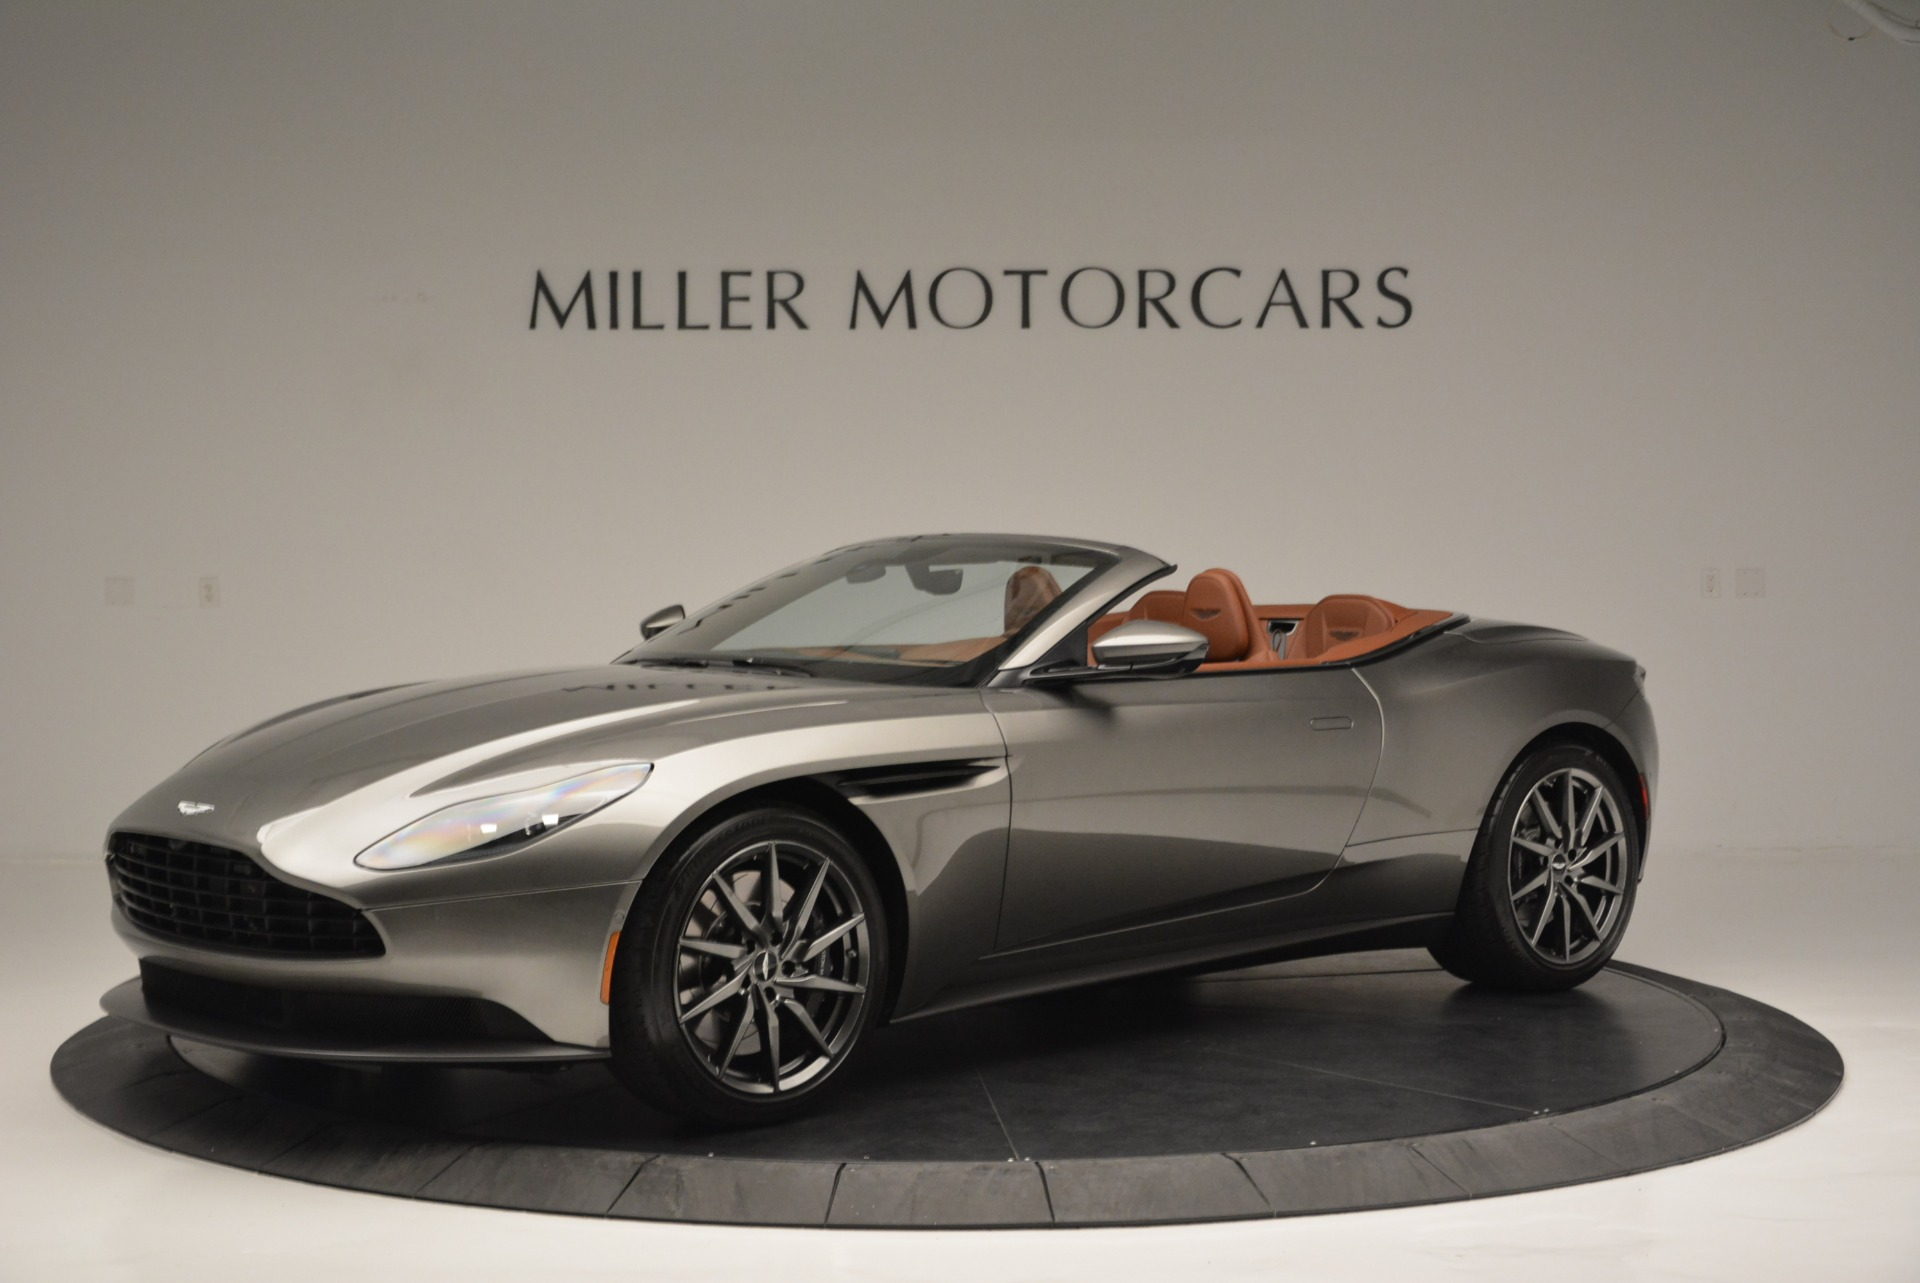 Pre Owned 2019 Aston Martin Db11 V8 Convertible For Sale 257 964 Miller Motorcars Stock A1297b